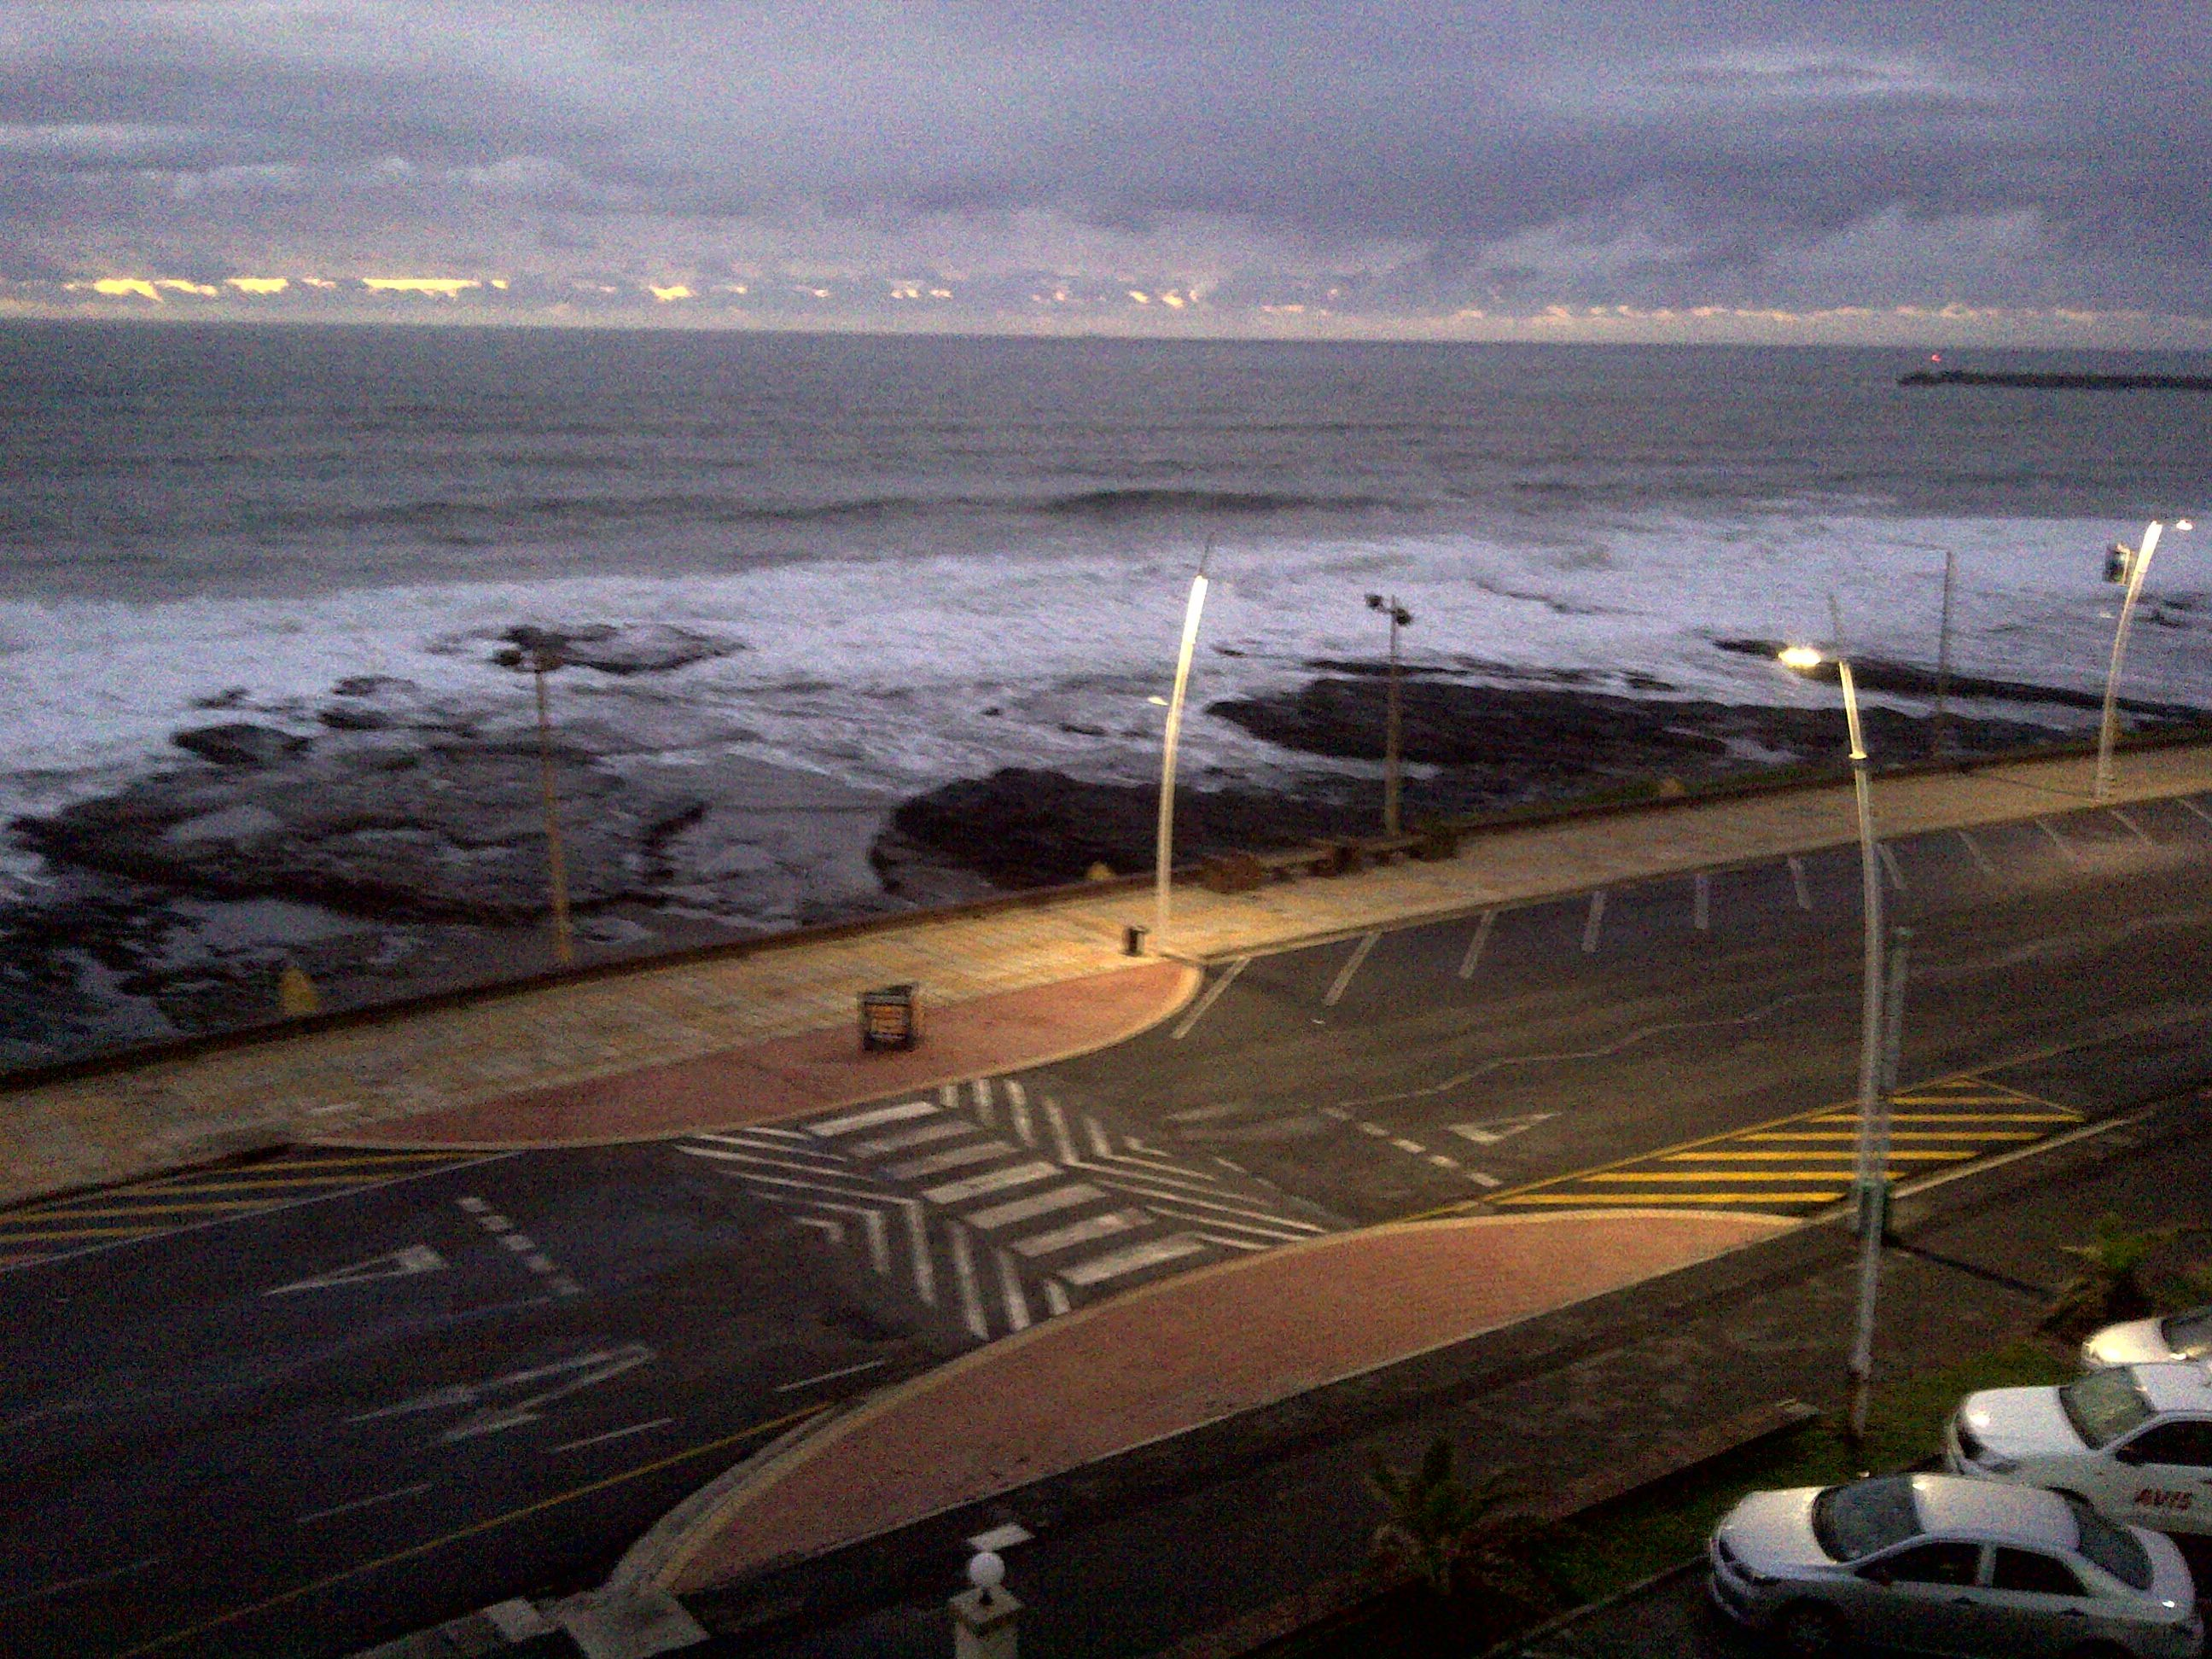 The beach front at around 5:30 am. East London, South Africa